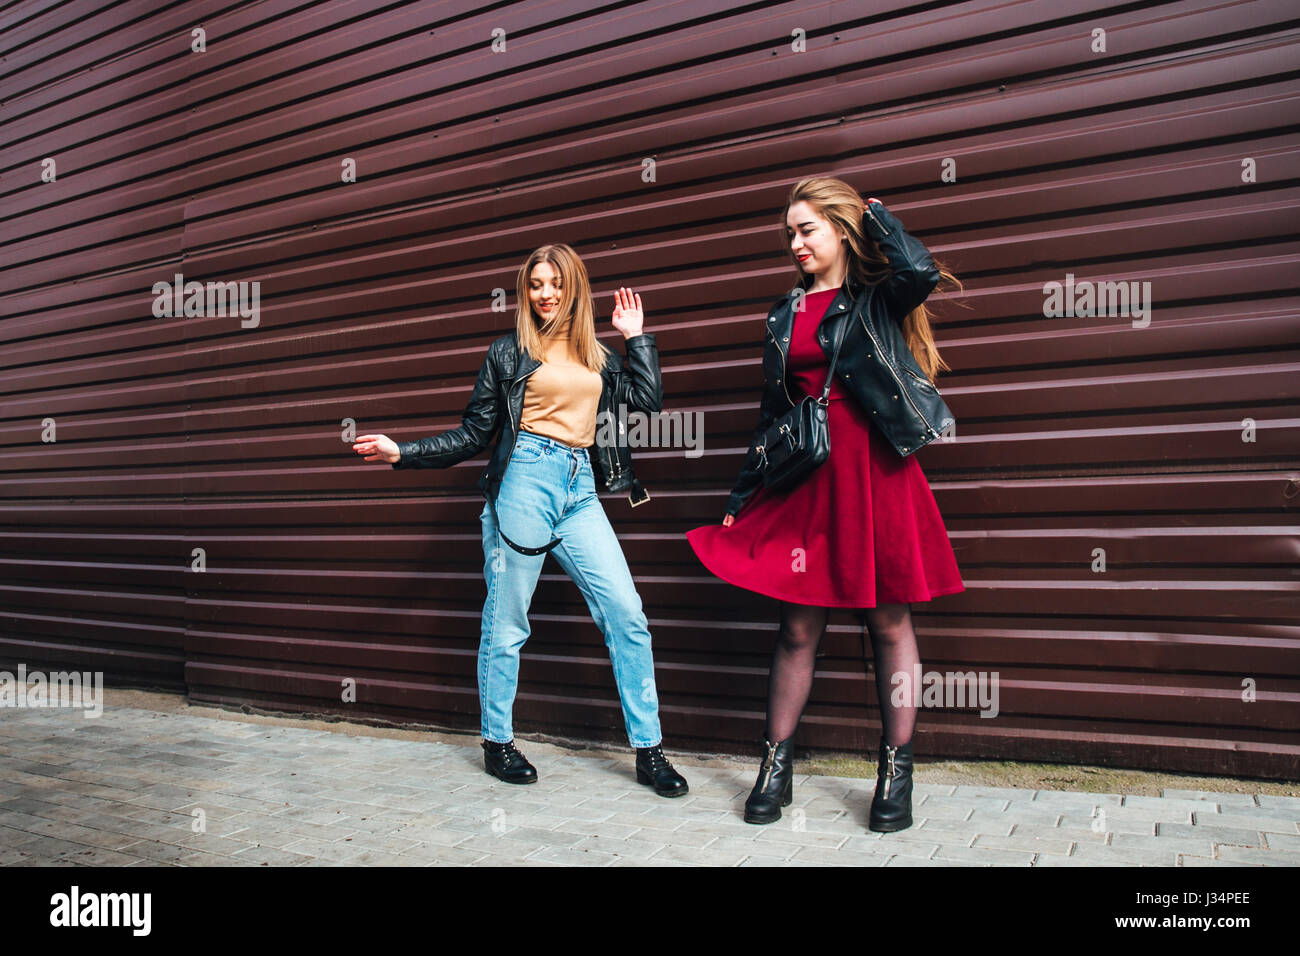 Two Women Talking in the City.Outdoor lifestyle portrait of two best friends hipster girls wearing stylish Leather - Stock Image